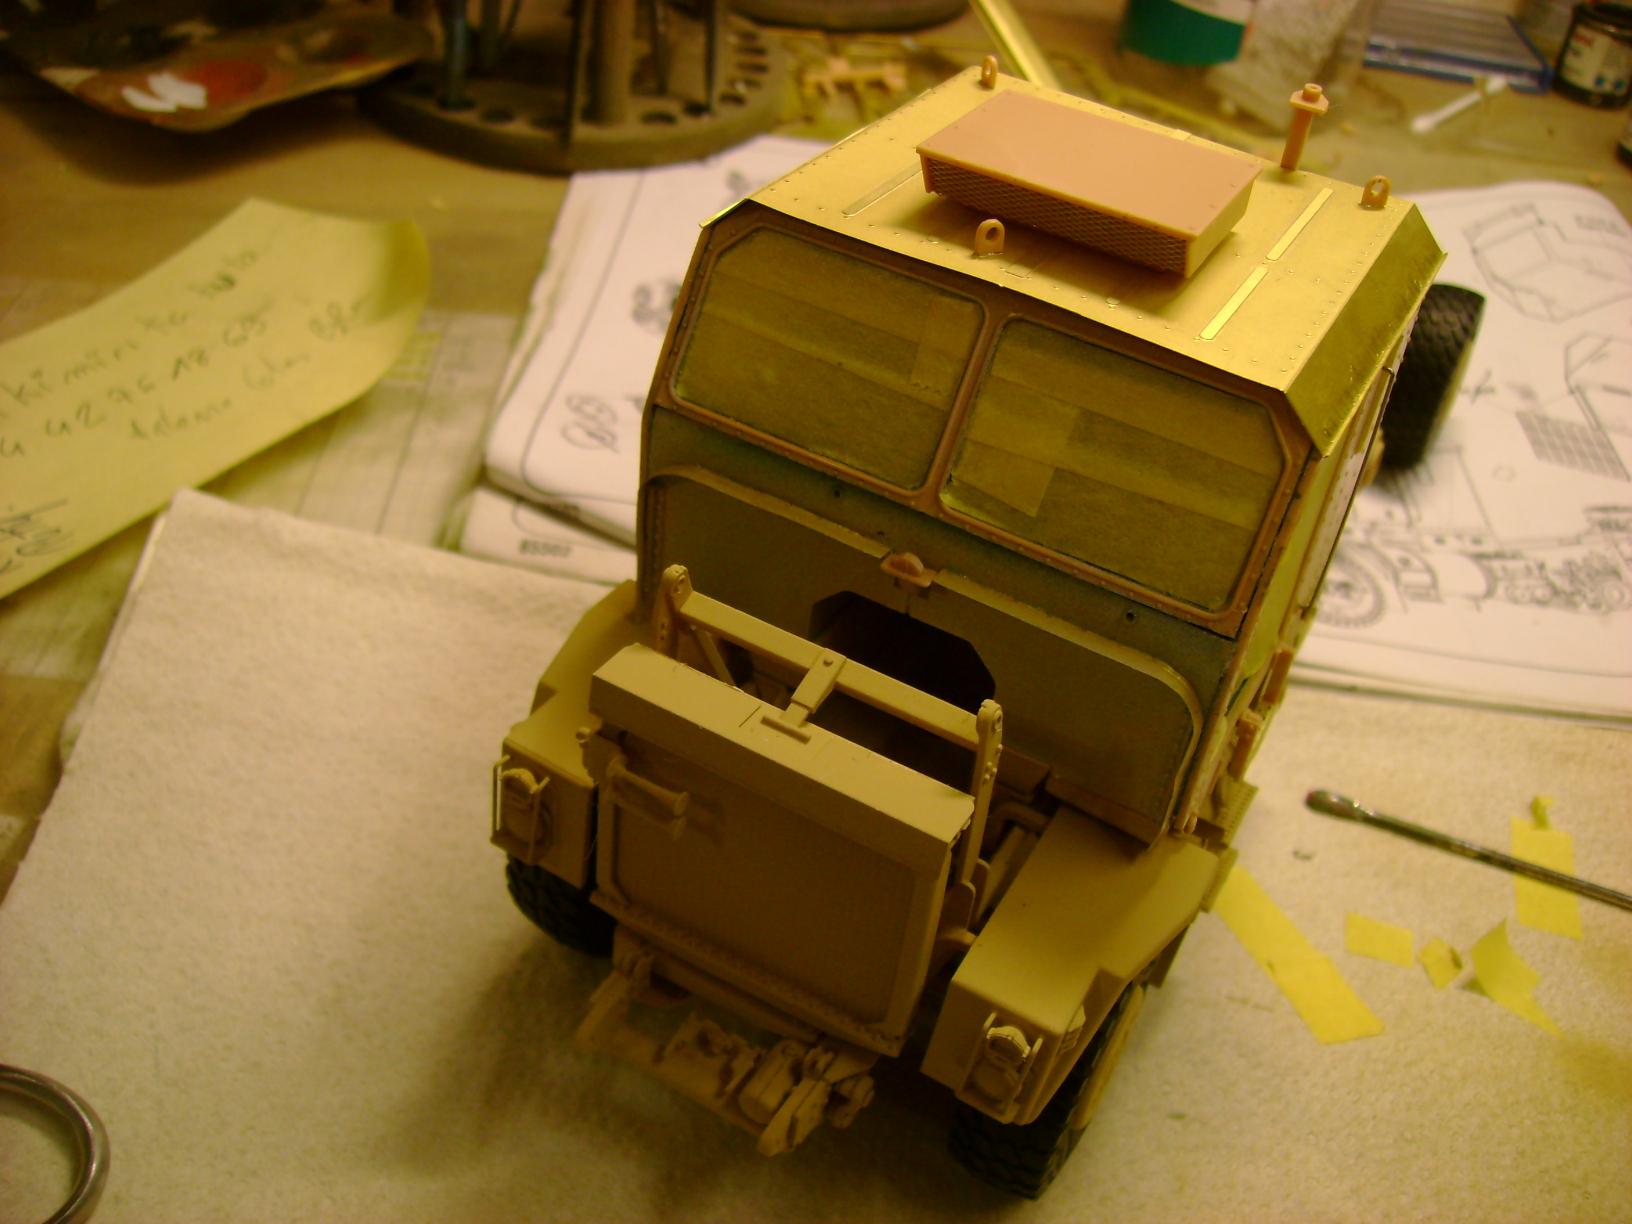 M1070 Truck Tractor & M1000 Semi-Trailer By T-bird!!!!! 1/35 Hobby Boss.Up du01/02.... - Page 4 108cxk